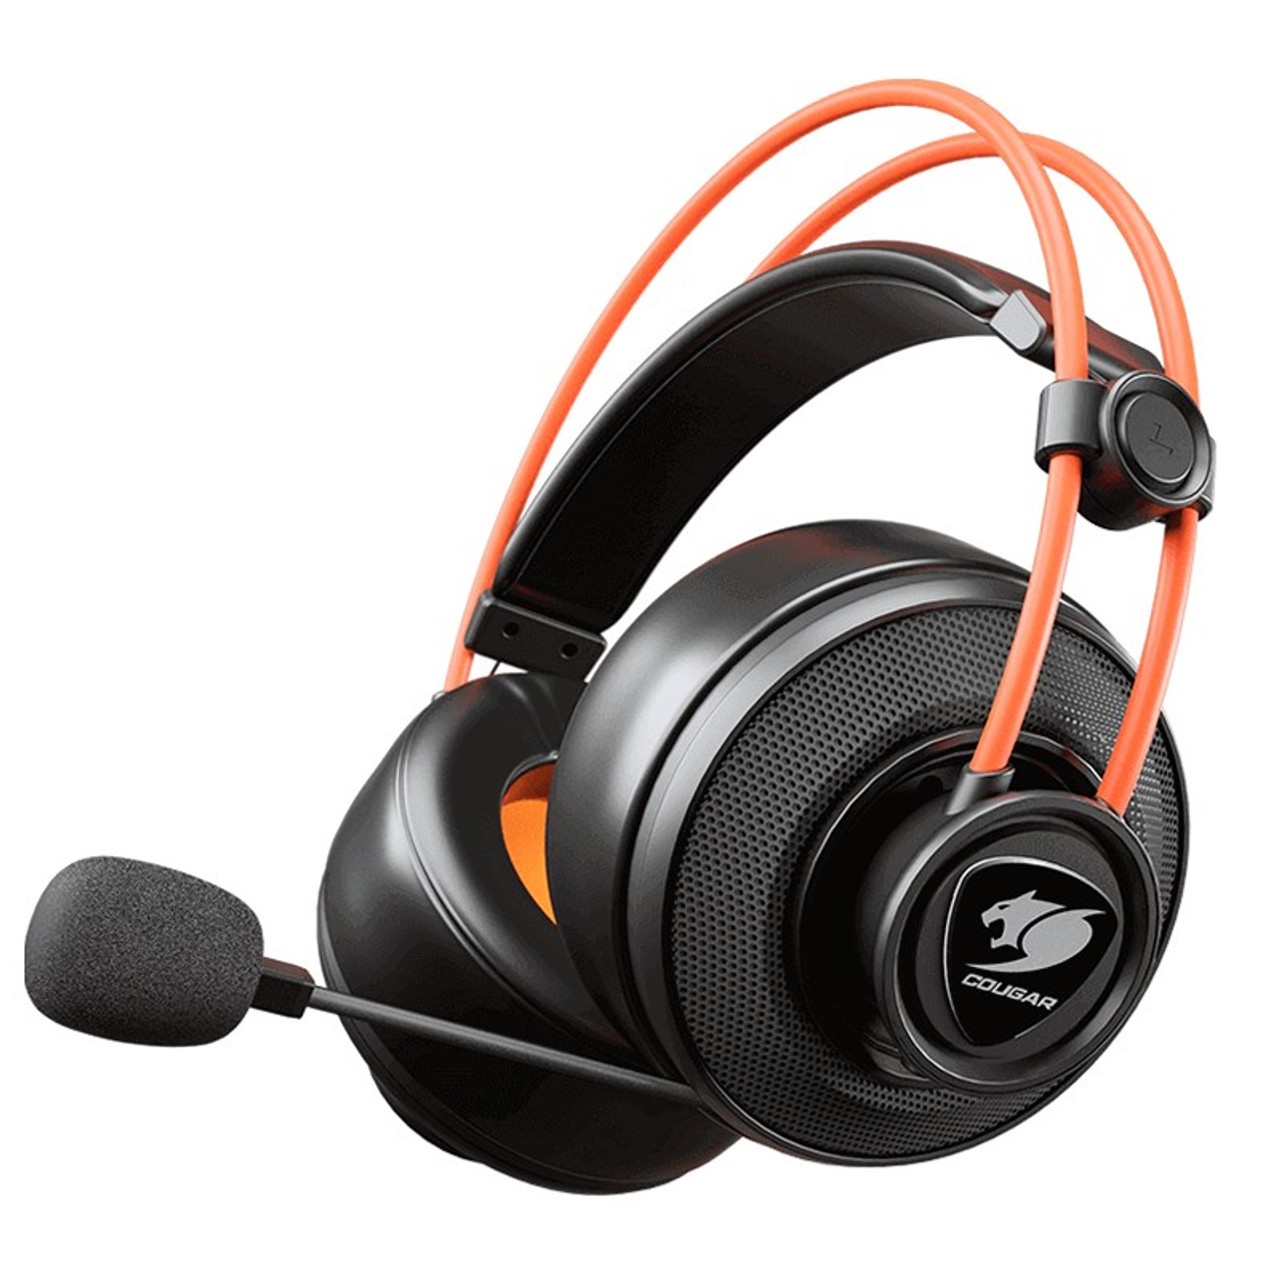 Image for Cougar Immersa TI Stereo Gaming Headset CX Computer Superstore